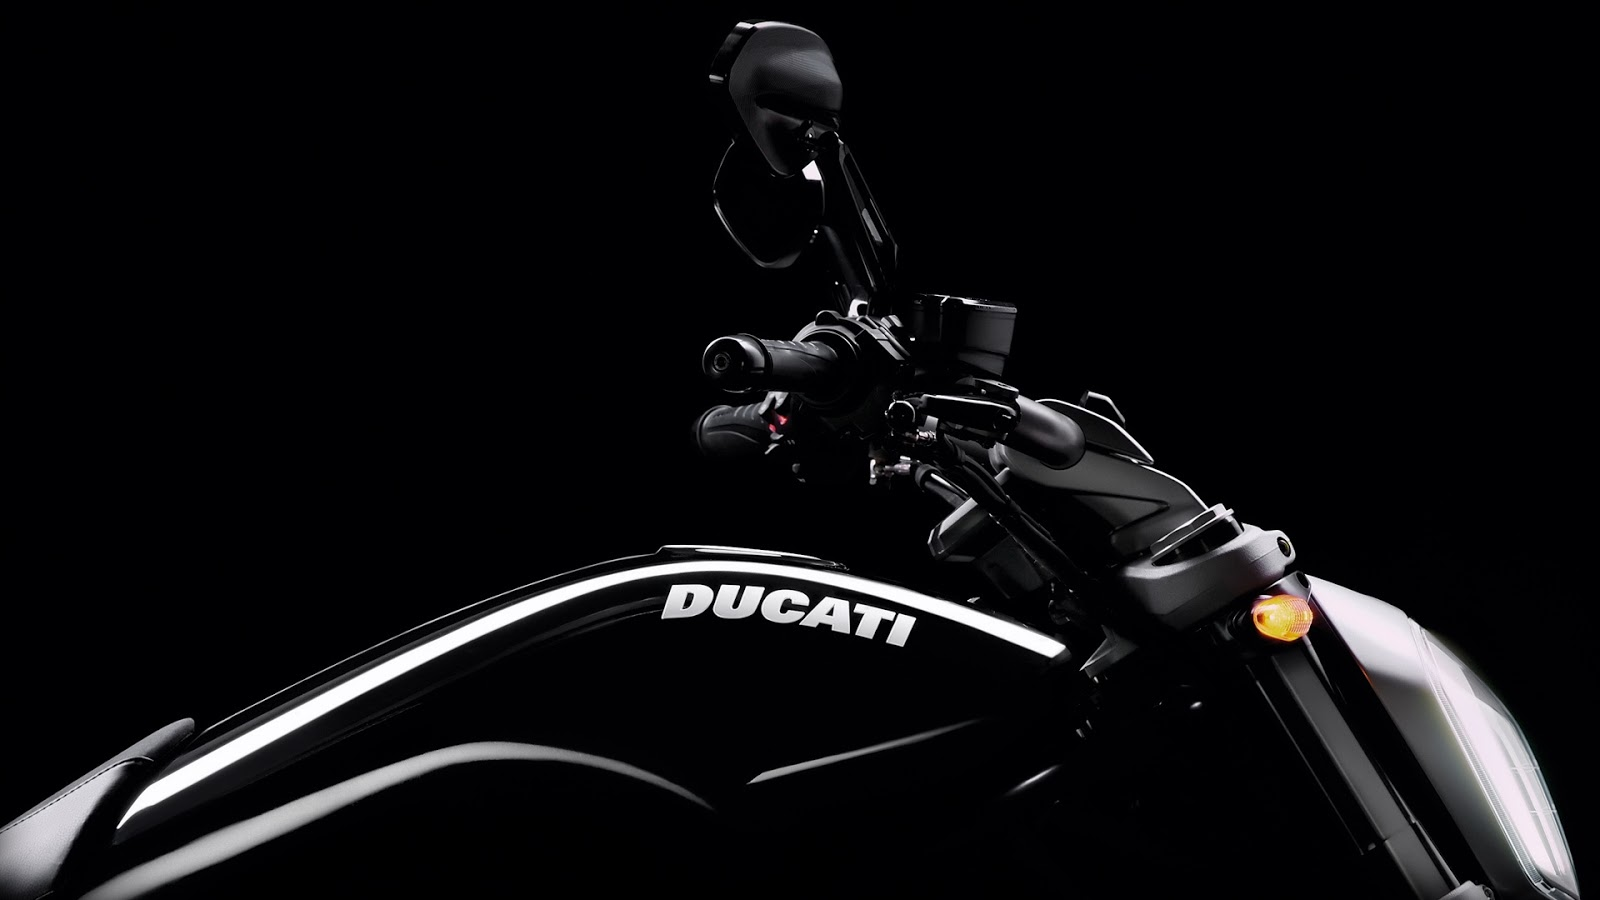 Ducati Xdiavel S Cruiser Can Be Yours For Inr 18 47 Lakhs